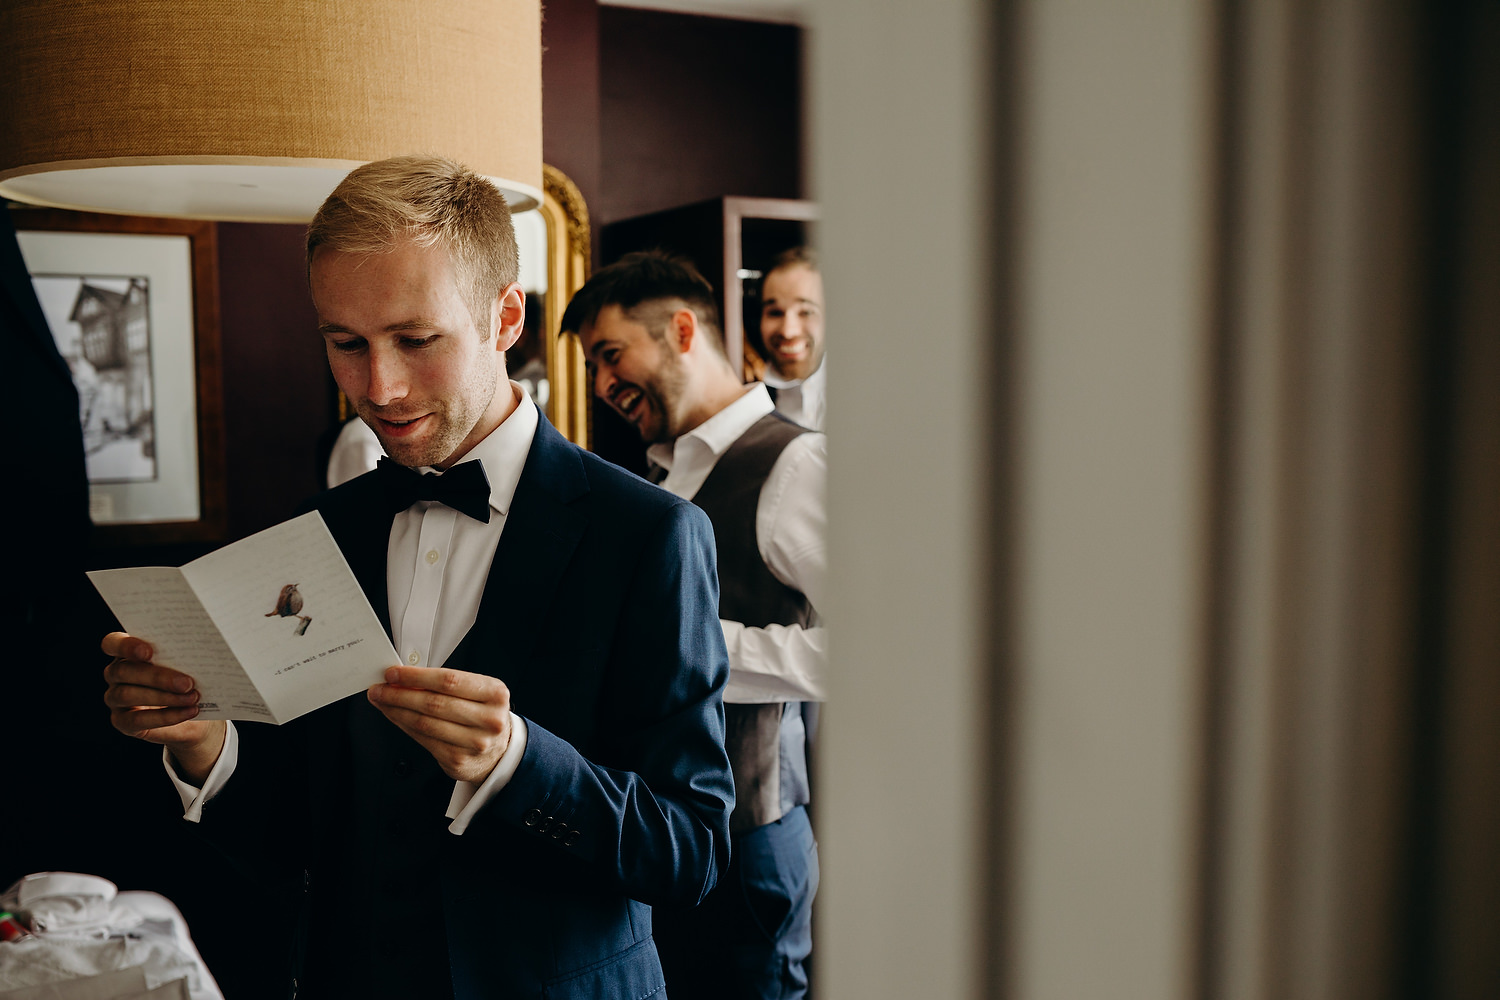 groom reading card from bride